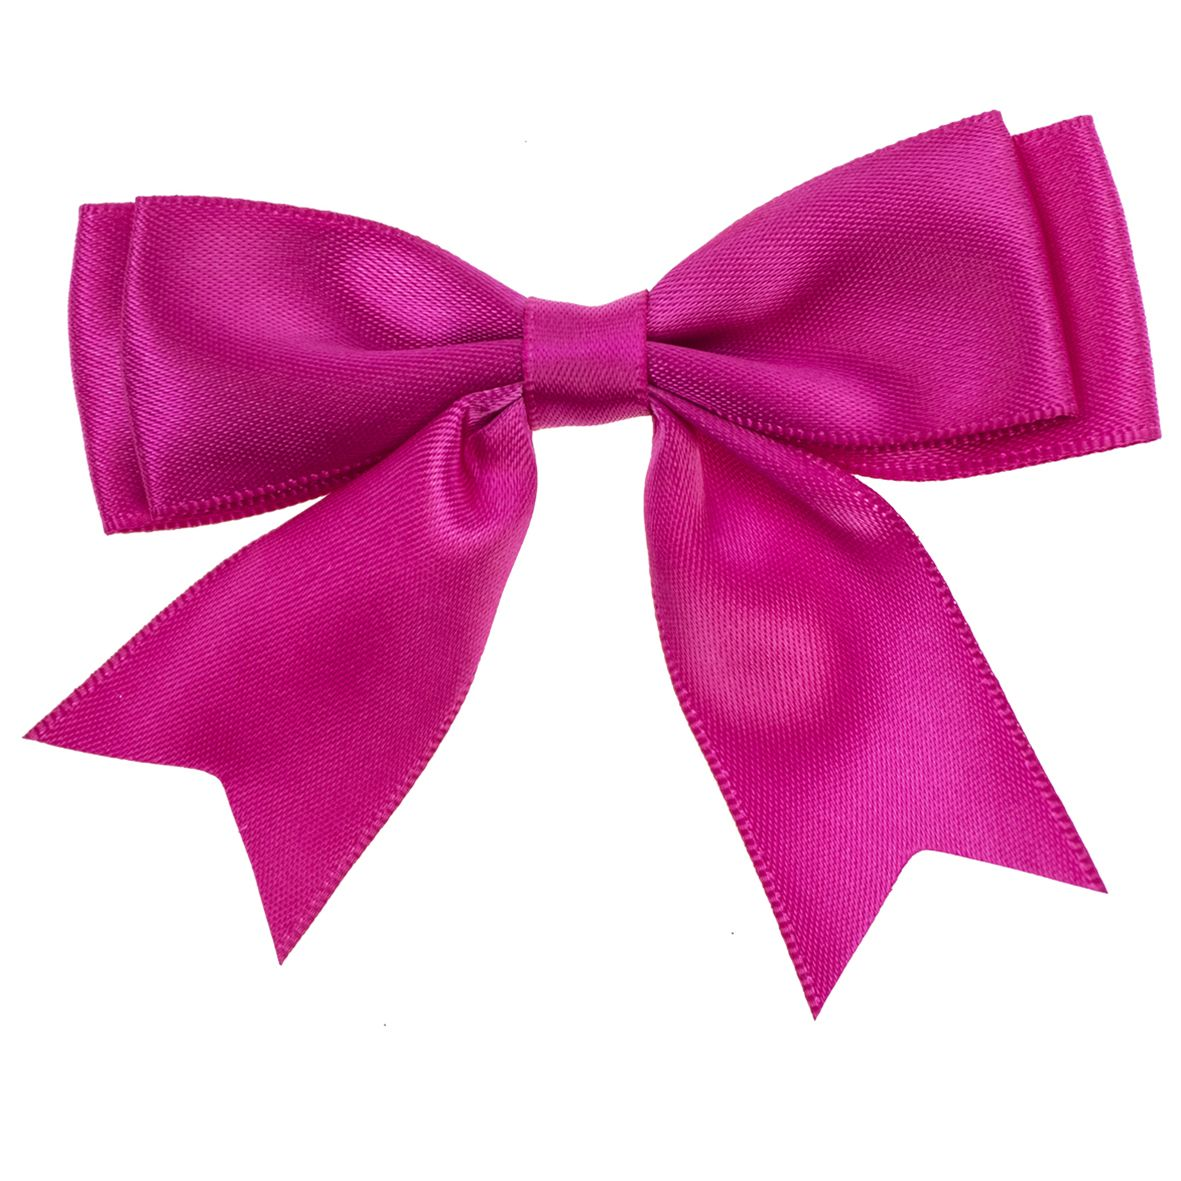 Ribbon and Bow Embellishments category image